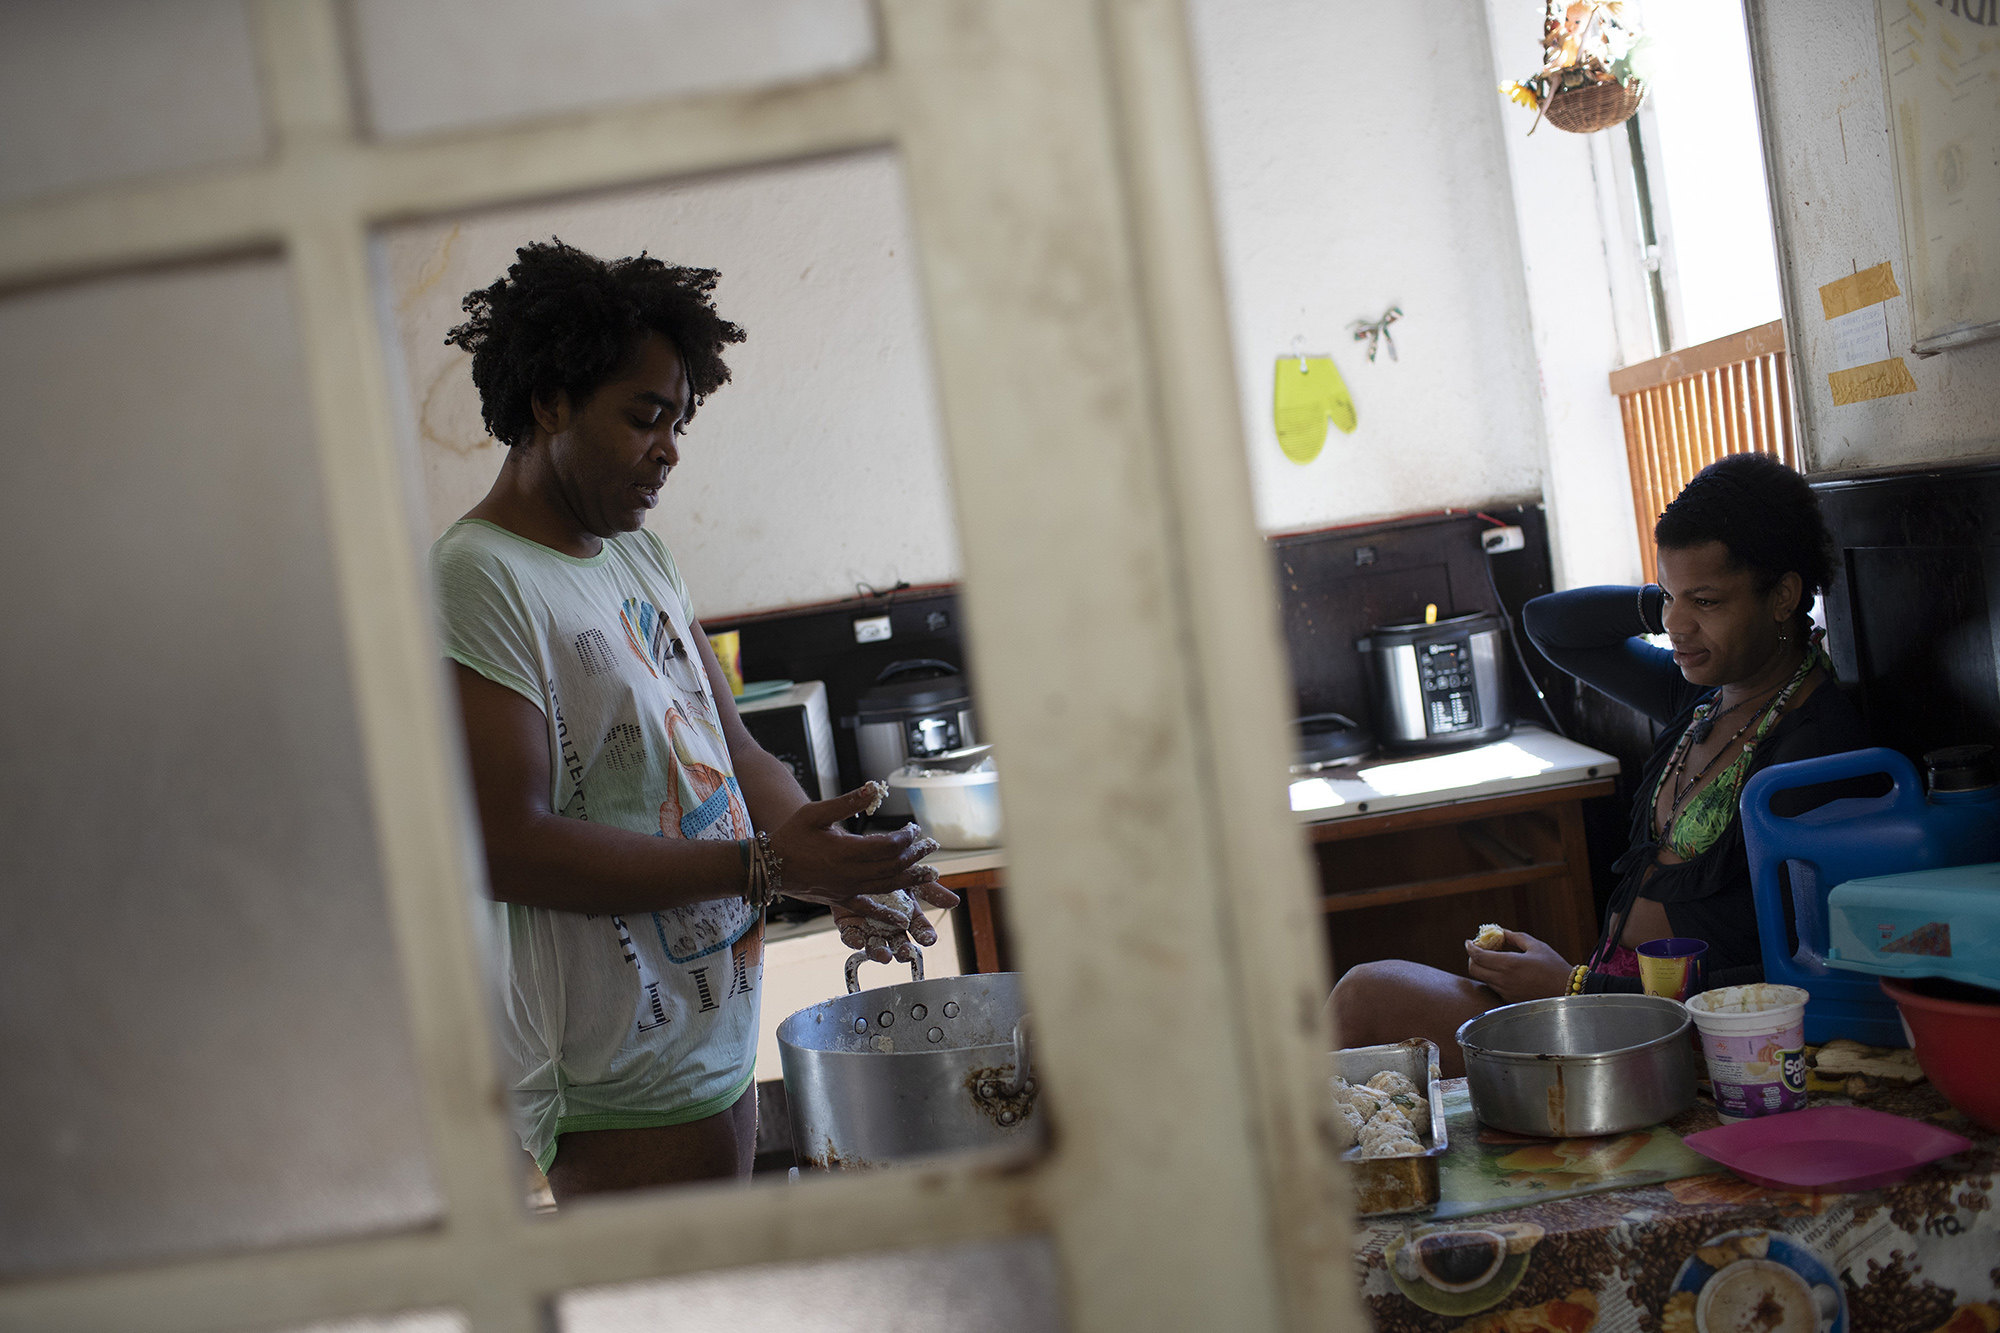 Morgana keeps Micaela company as she prepares rice balls for lunch in the kitchen of the squat known as Casa Nem, occupied by members of the LGBTQ community who are in self-quarantine as a protective measure against the new coronavirus, in Rio de Janeiro, Brazil, Wednesday, July 8, 2020. Self-imposed lockdown is one of few ways this traditionally marginalized group has found to minimize COVID-19 risks, while others remain vulnerable on the streets.